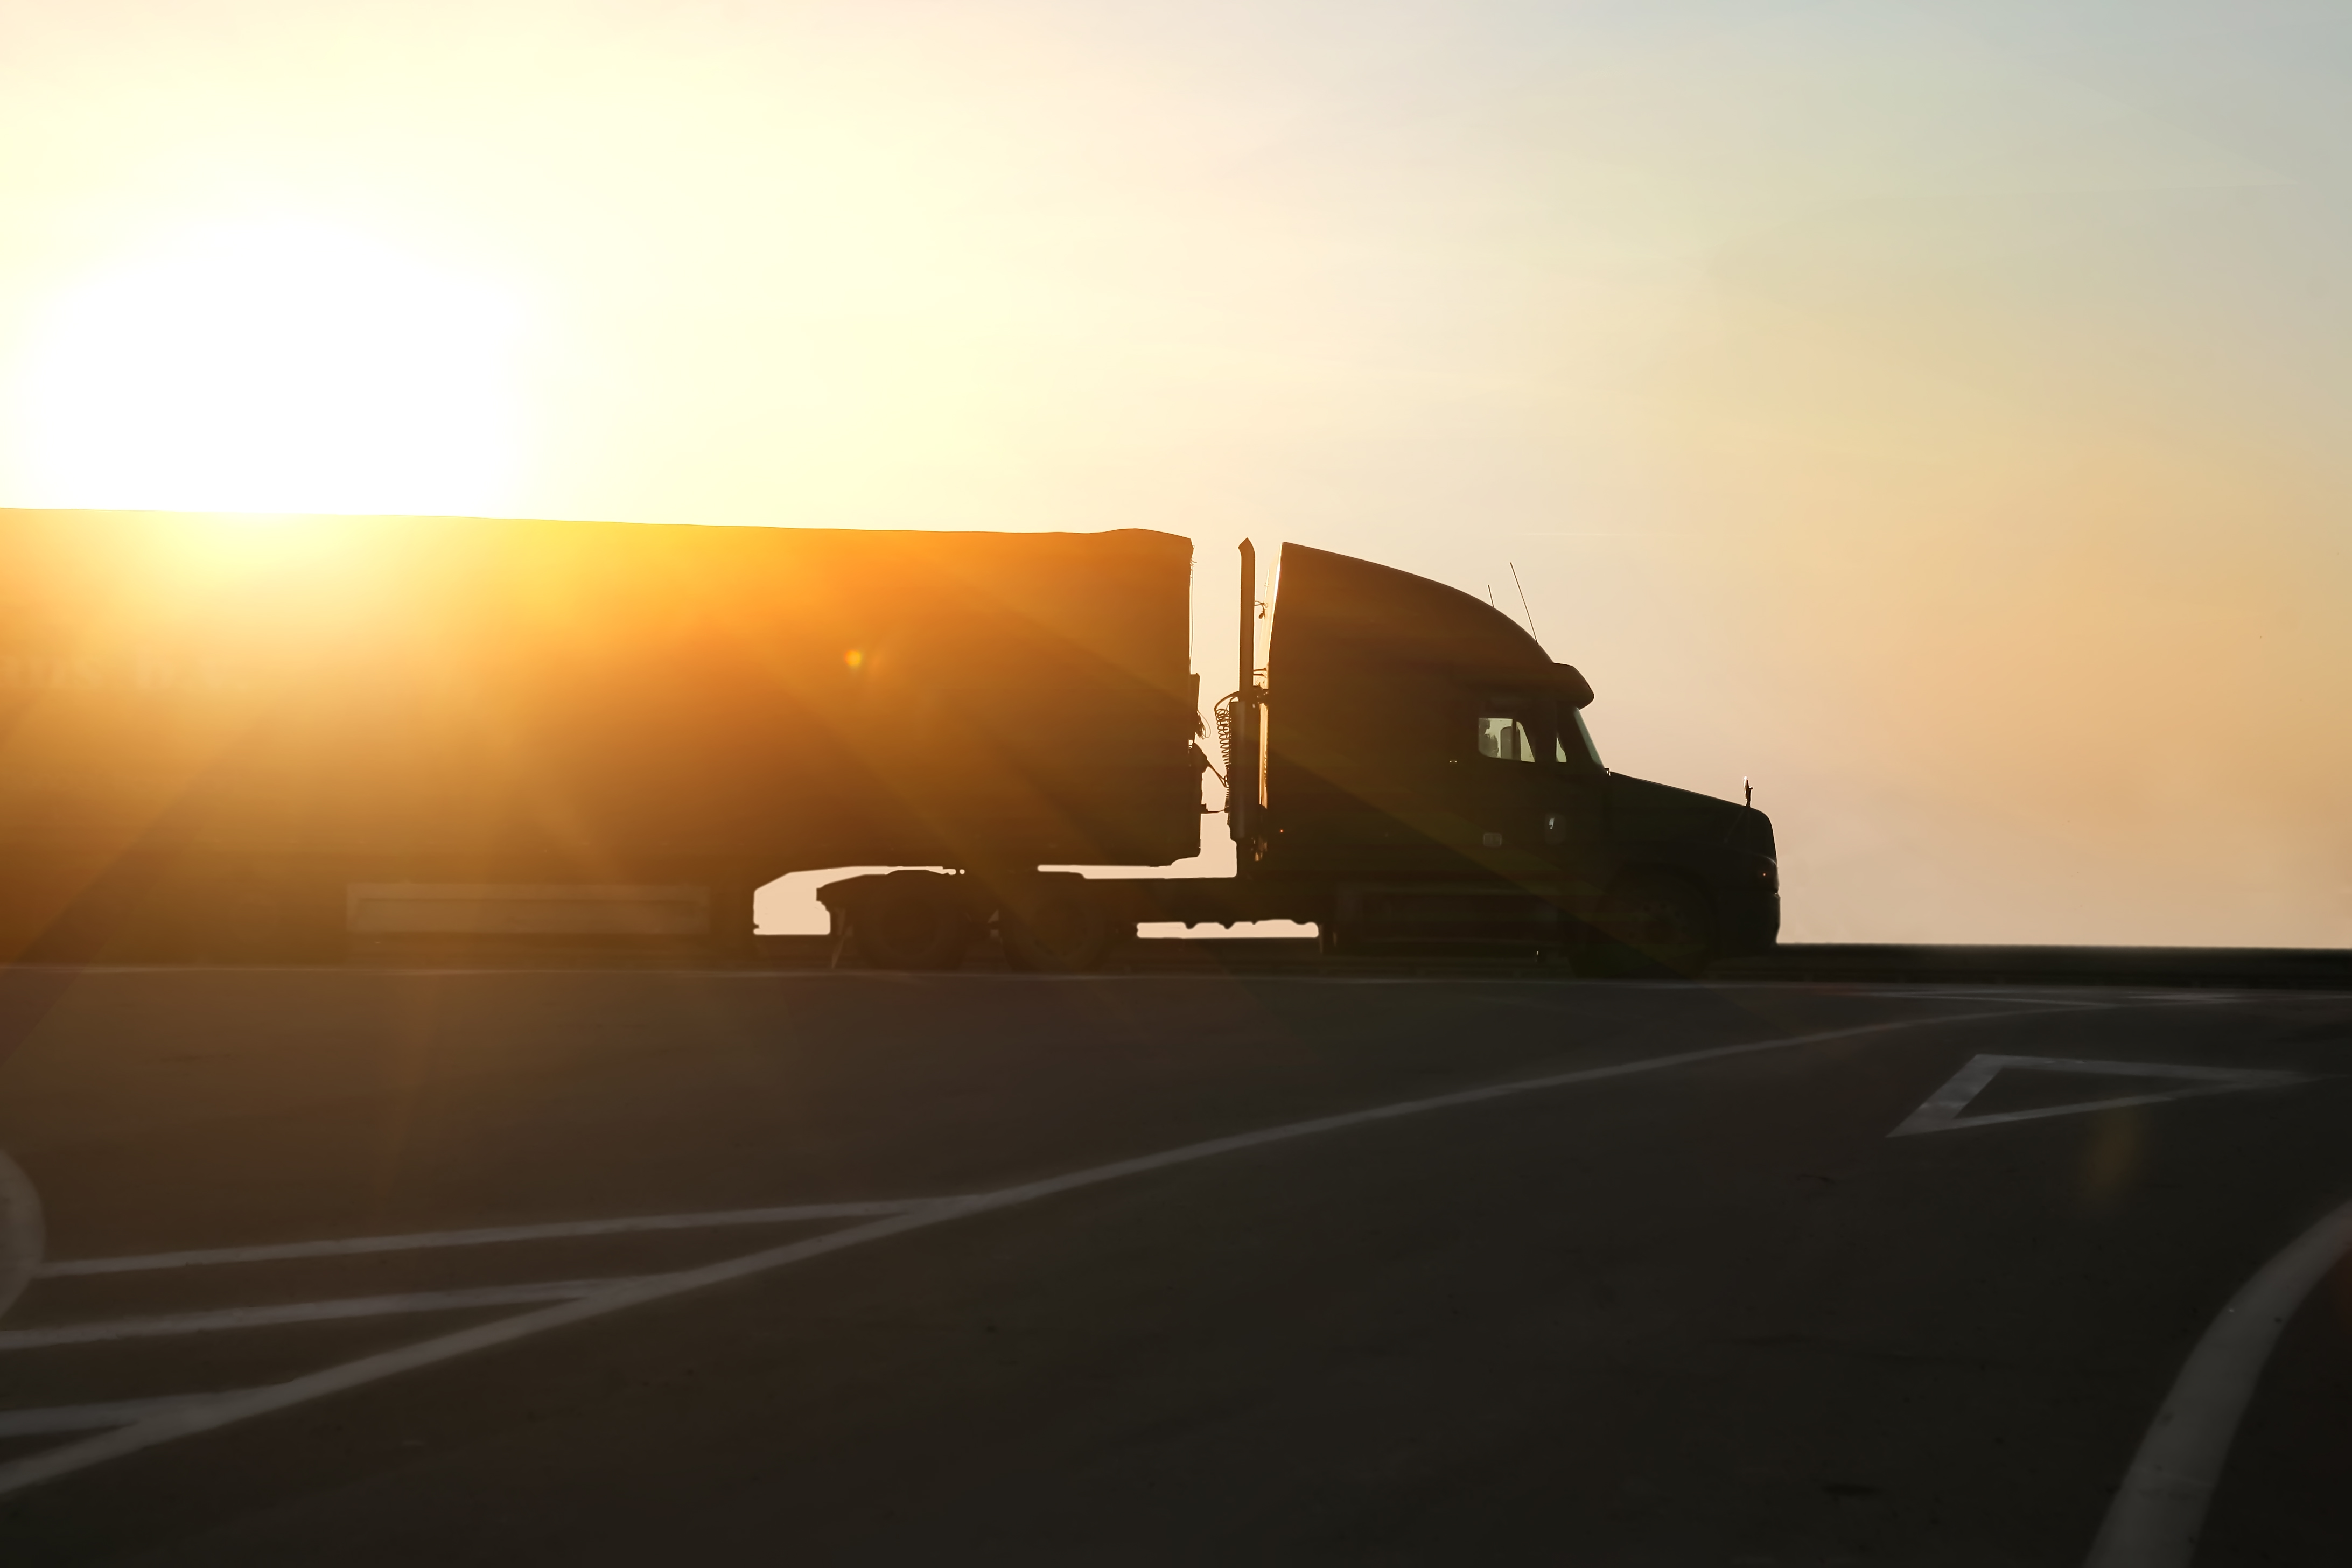 Top 10 Issues for the Trucking Industry in 2016